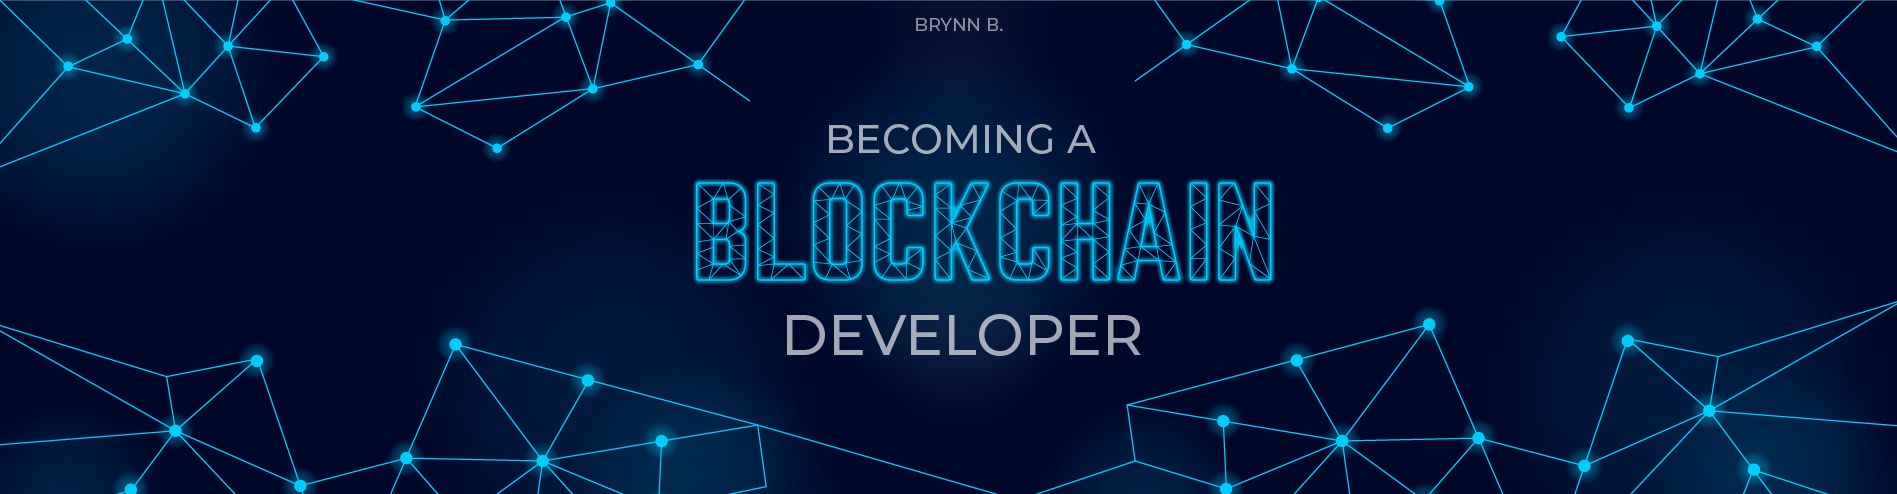 Becoming a Blockchain Developer